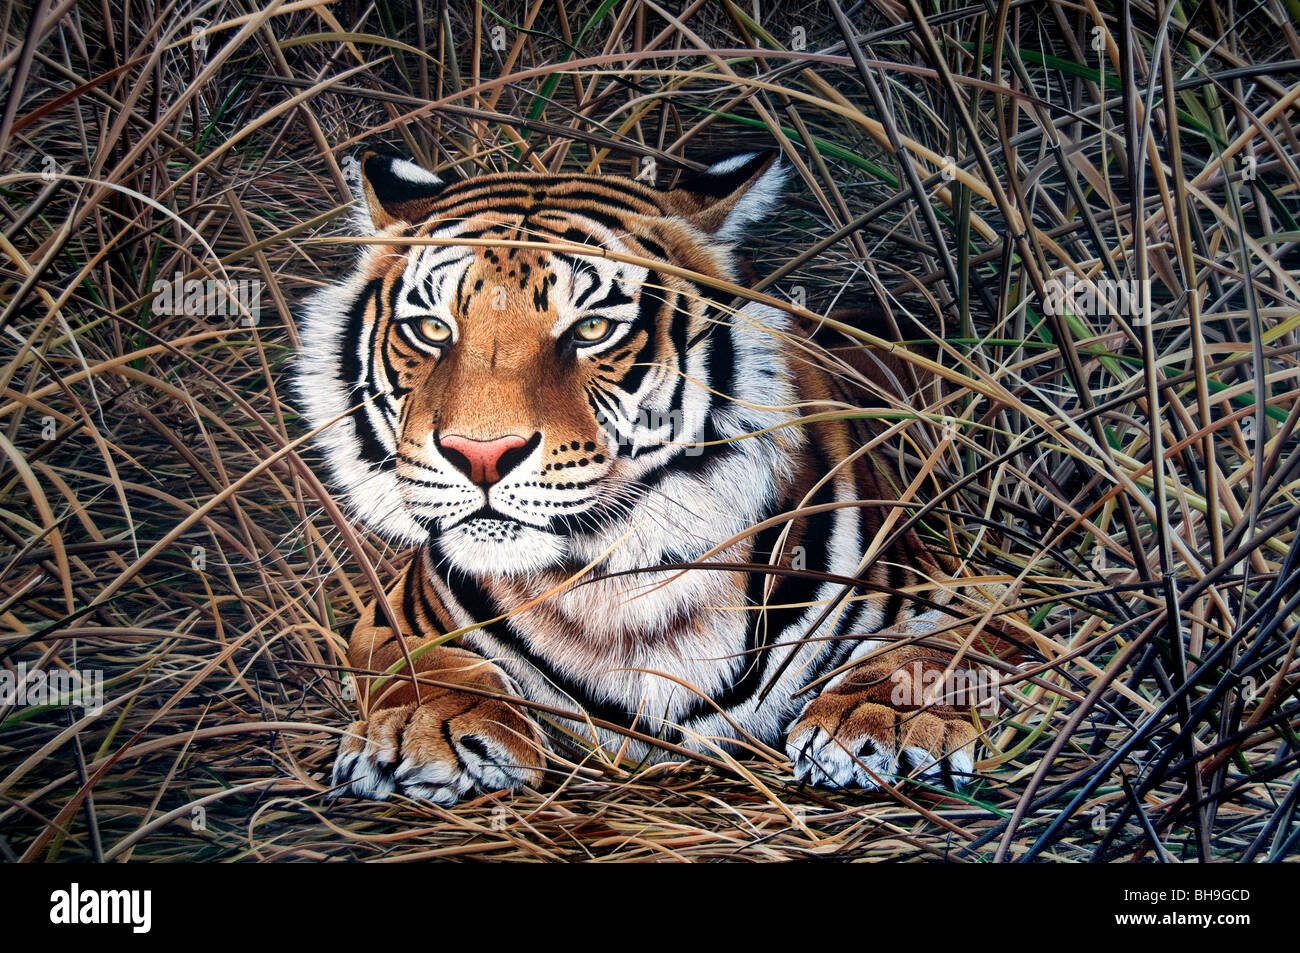 Tiger Buenos Aires San Telmo Gallery Art Painting Artist Argentina Town City - Stock Image